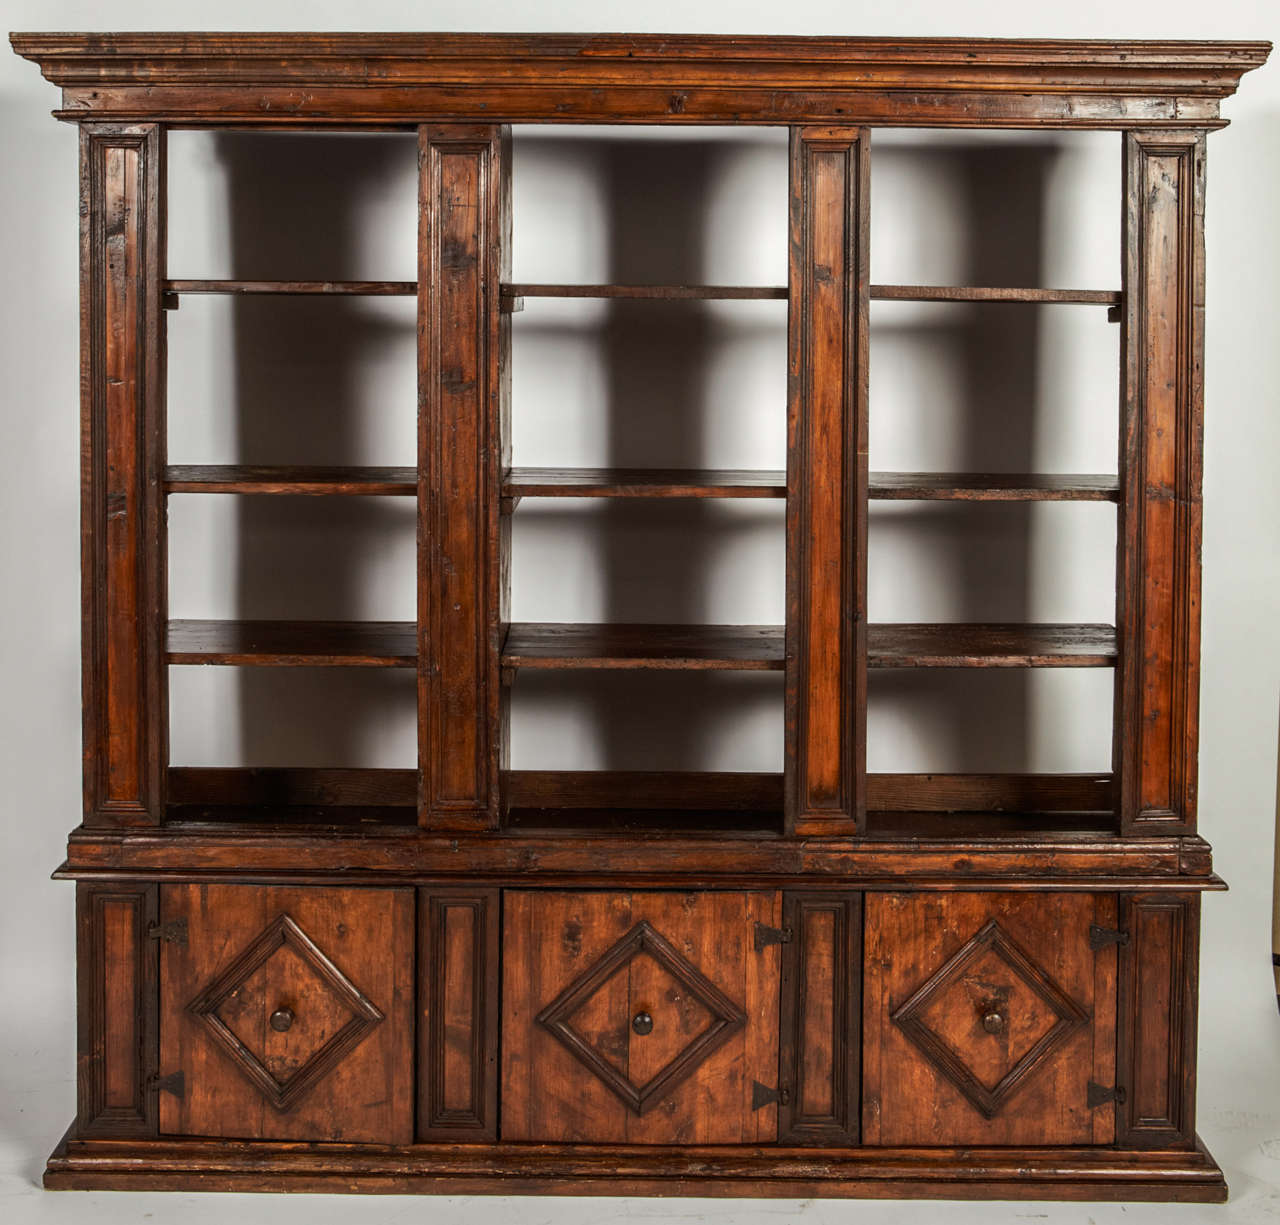 A Early 18th C. Italian Bookcase Or Dining Room Cabinet